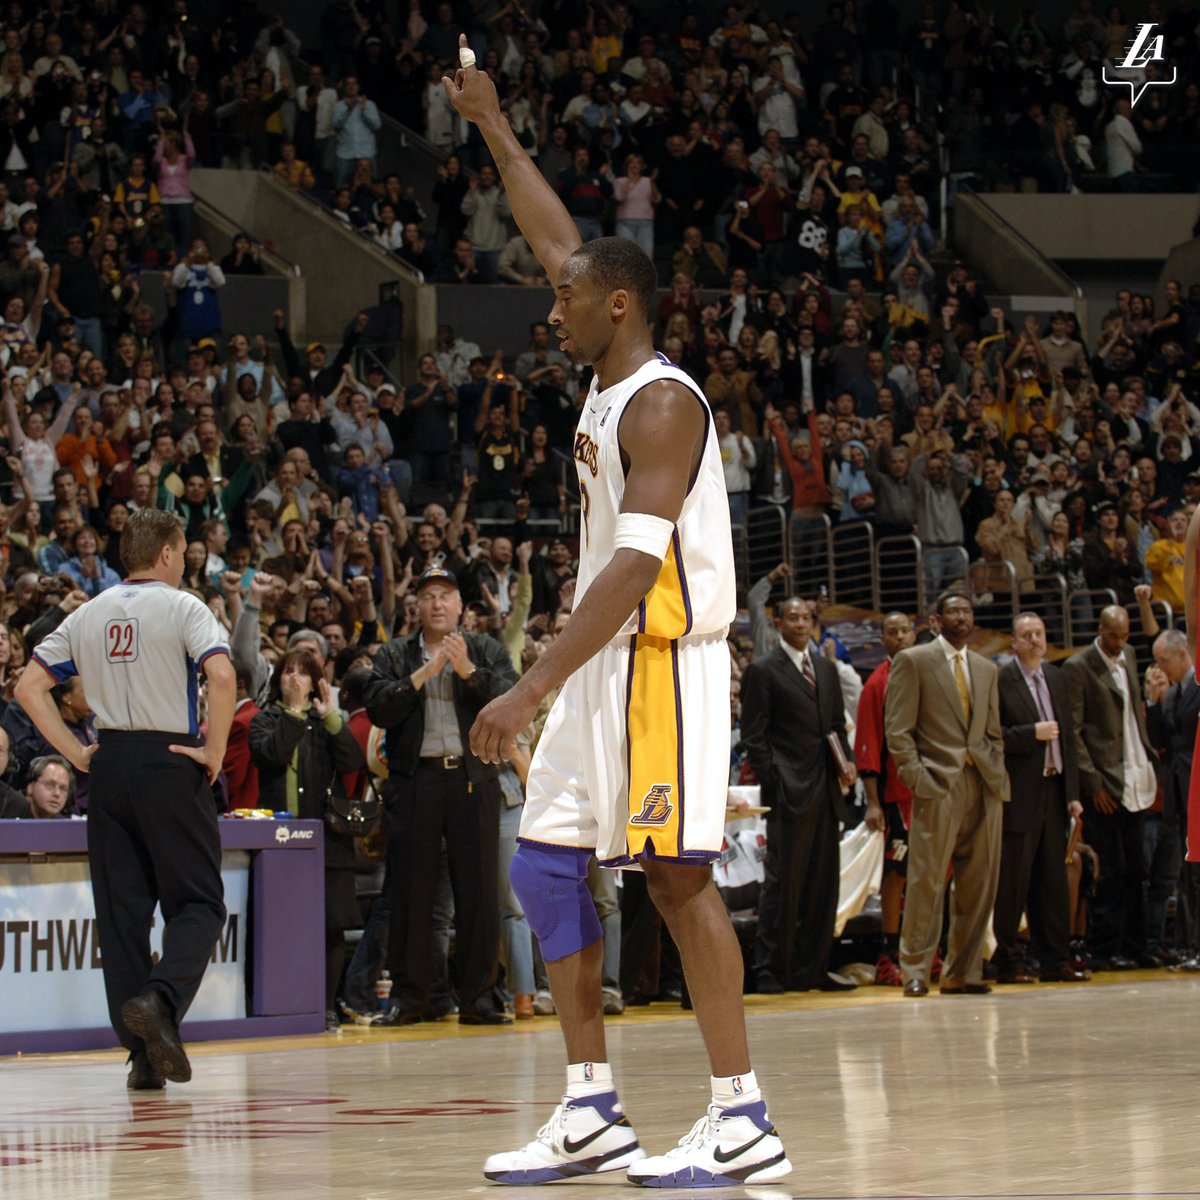 9:03 pm: Fifteen years ago to the minute, the great Kobe Bryant walked off the court with 81 points in a single game 🖤